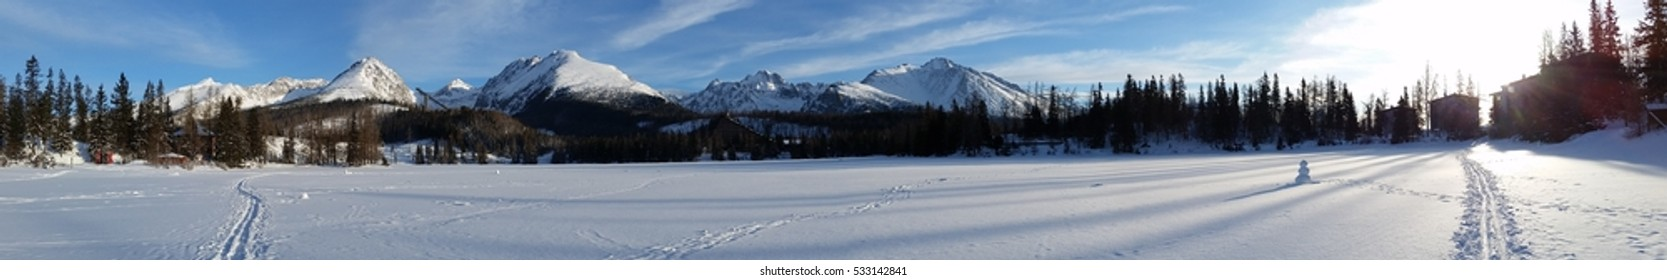 Snow peaked mountain ranges with tall pine trees and a wide flat land covered with snow showig trails of vehicles